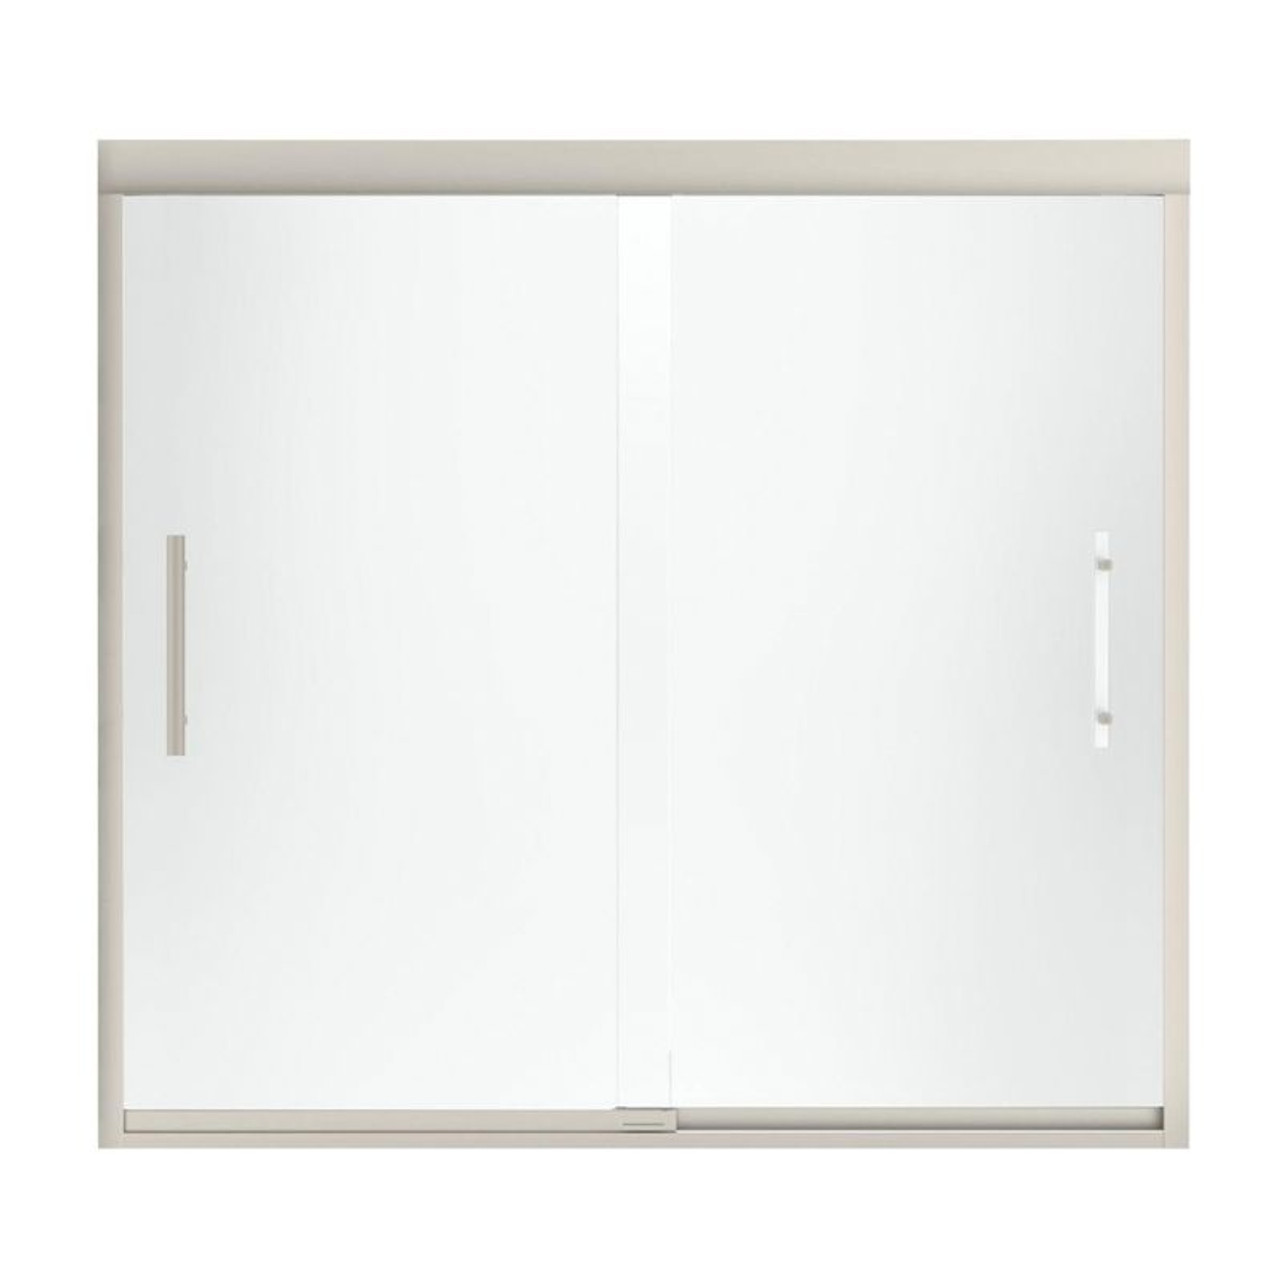 Sterling 542808 59n G03 Finesse 56 625 To 59 625 In X 55 5 In Frameless Alcove Shower Door With Frosted Glass